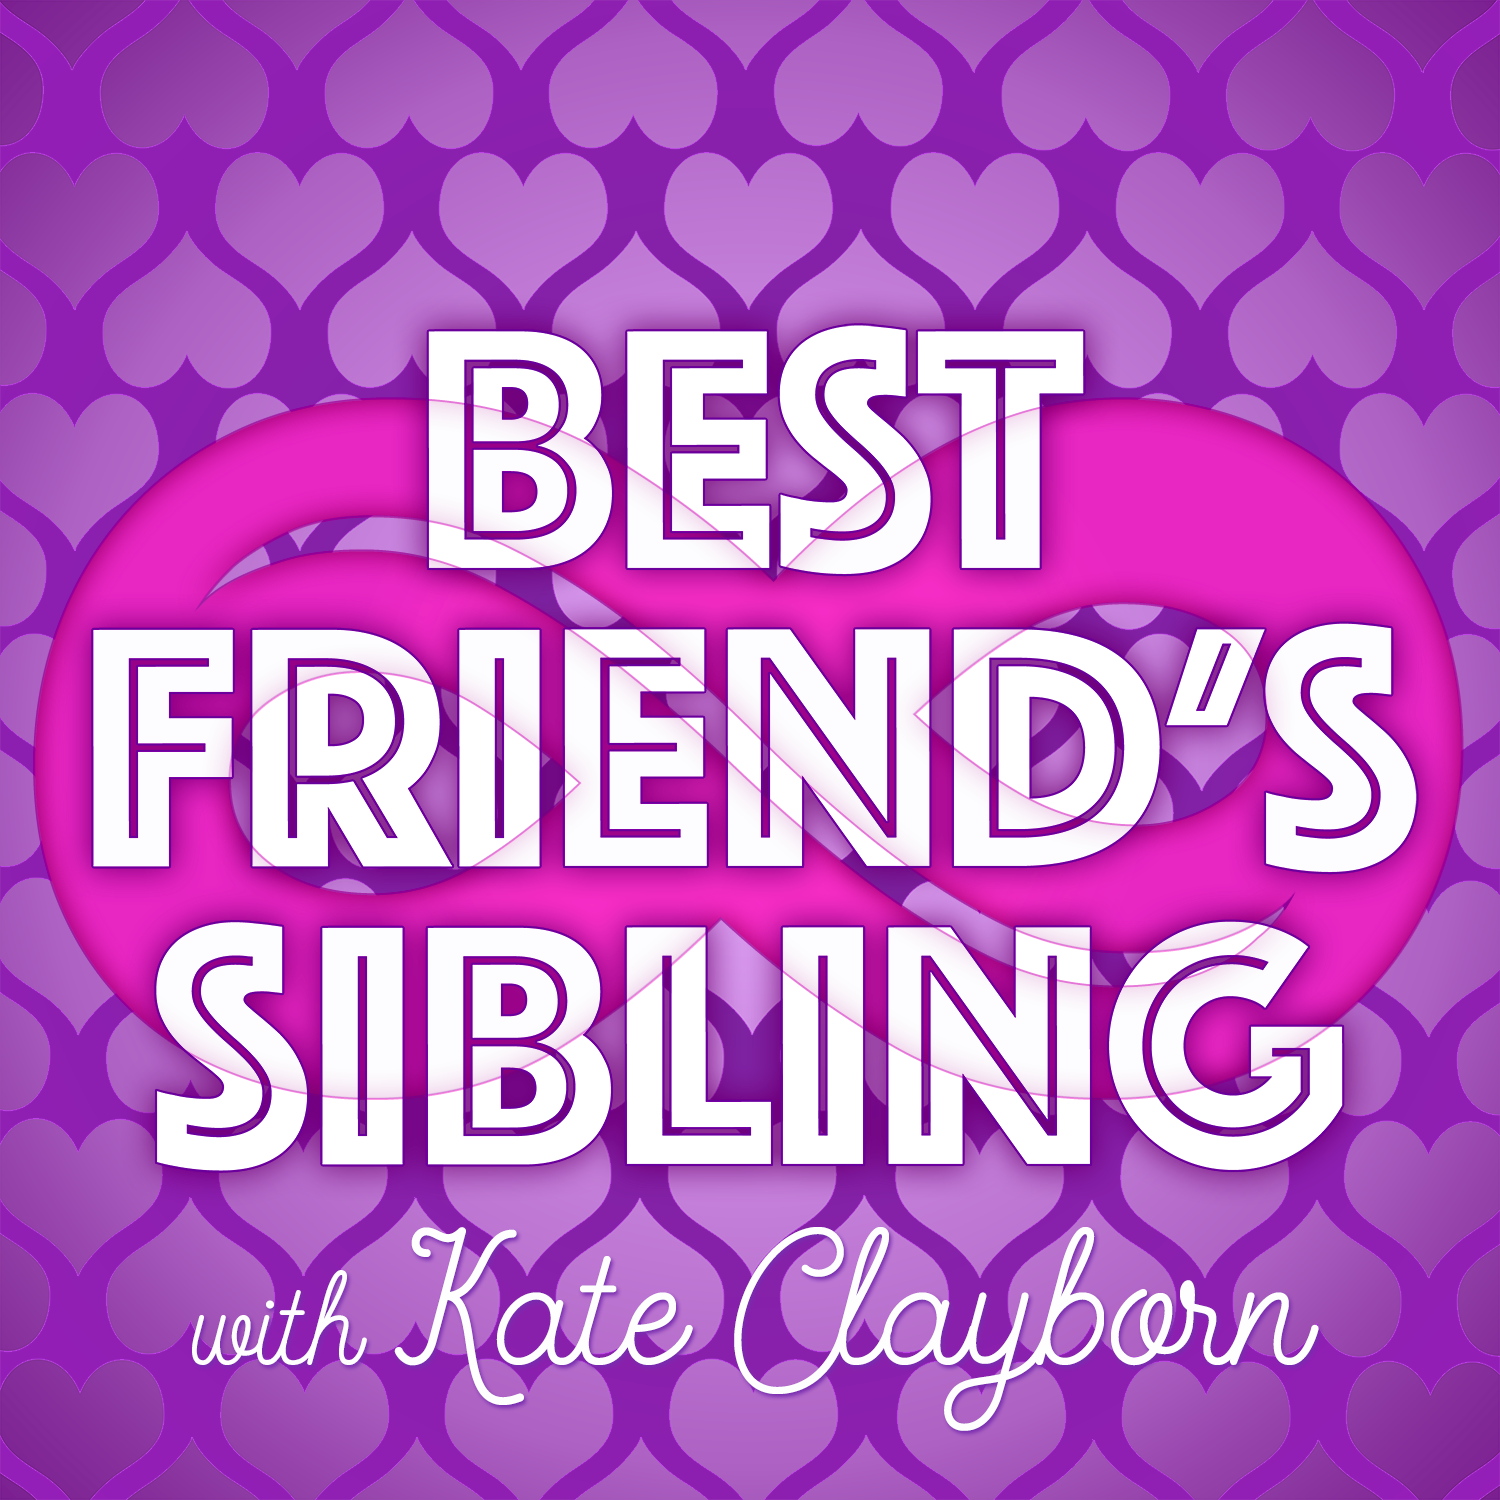 Best Friend's Sibling Romance Novels with Kate Clayborn